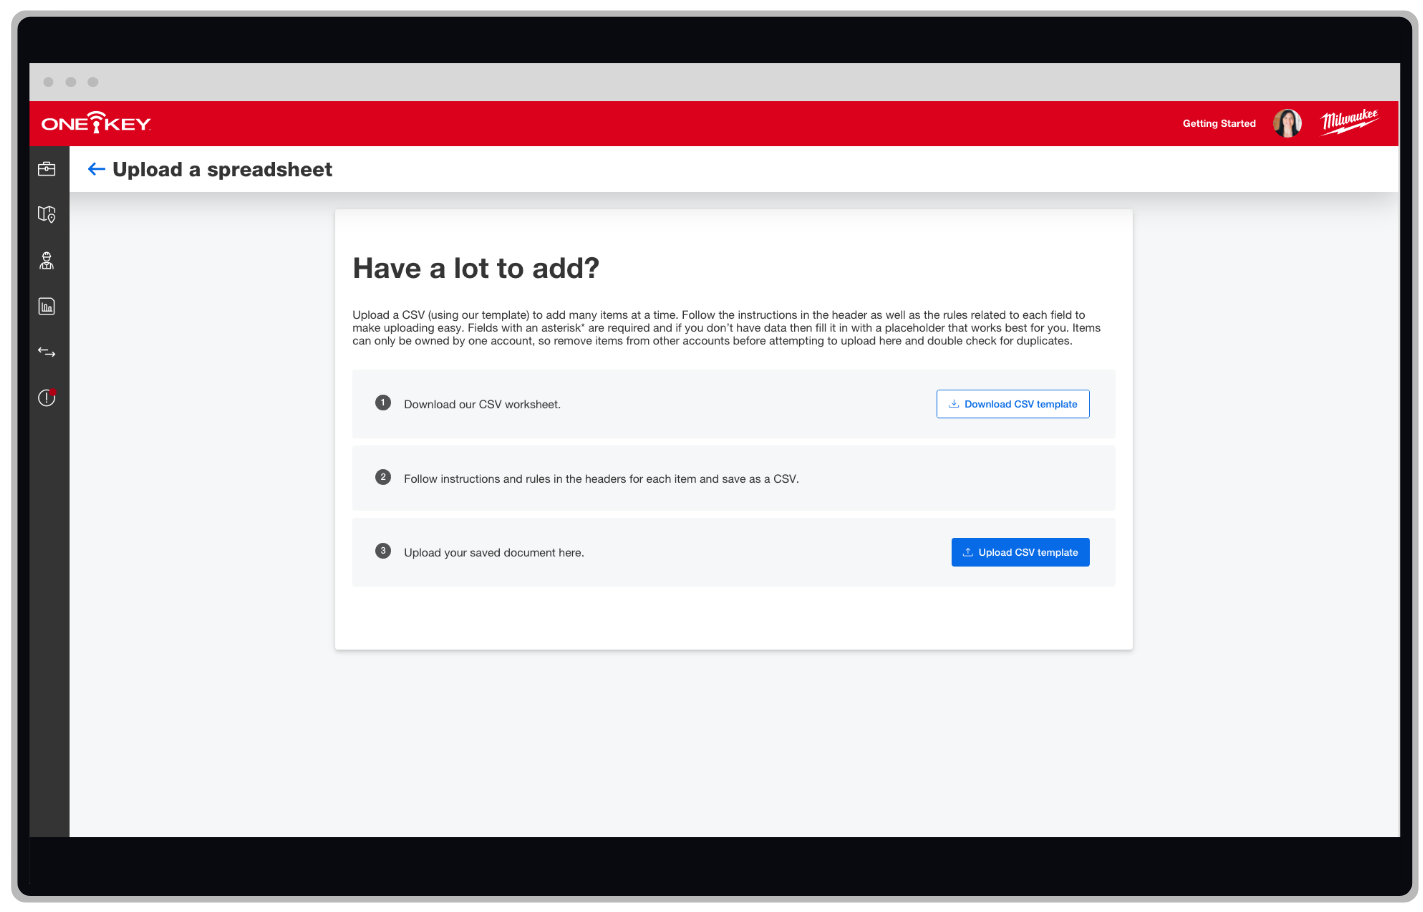 One-Key inventory management web app now has an improved bulk uploading feature